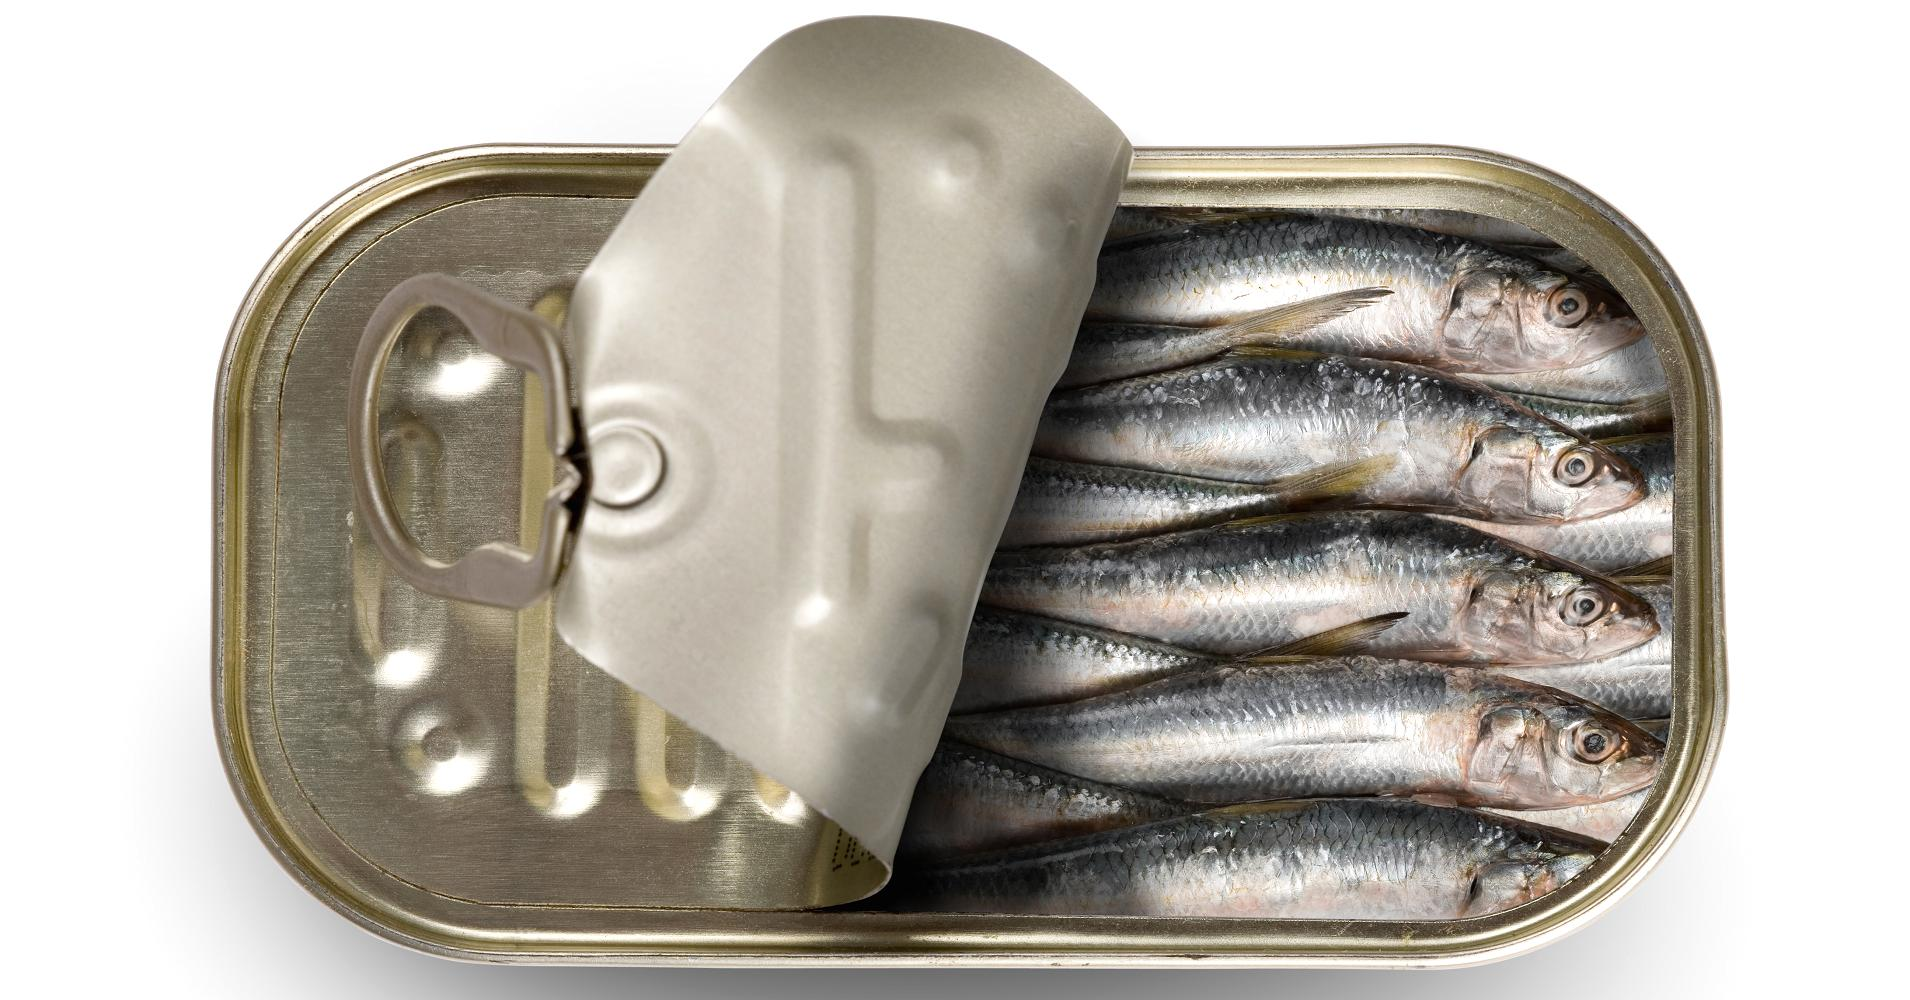 Sardines for Breakfast